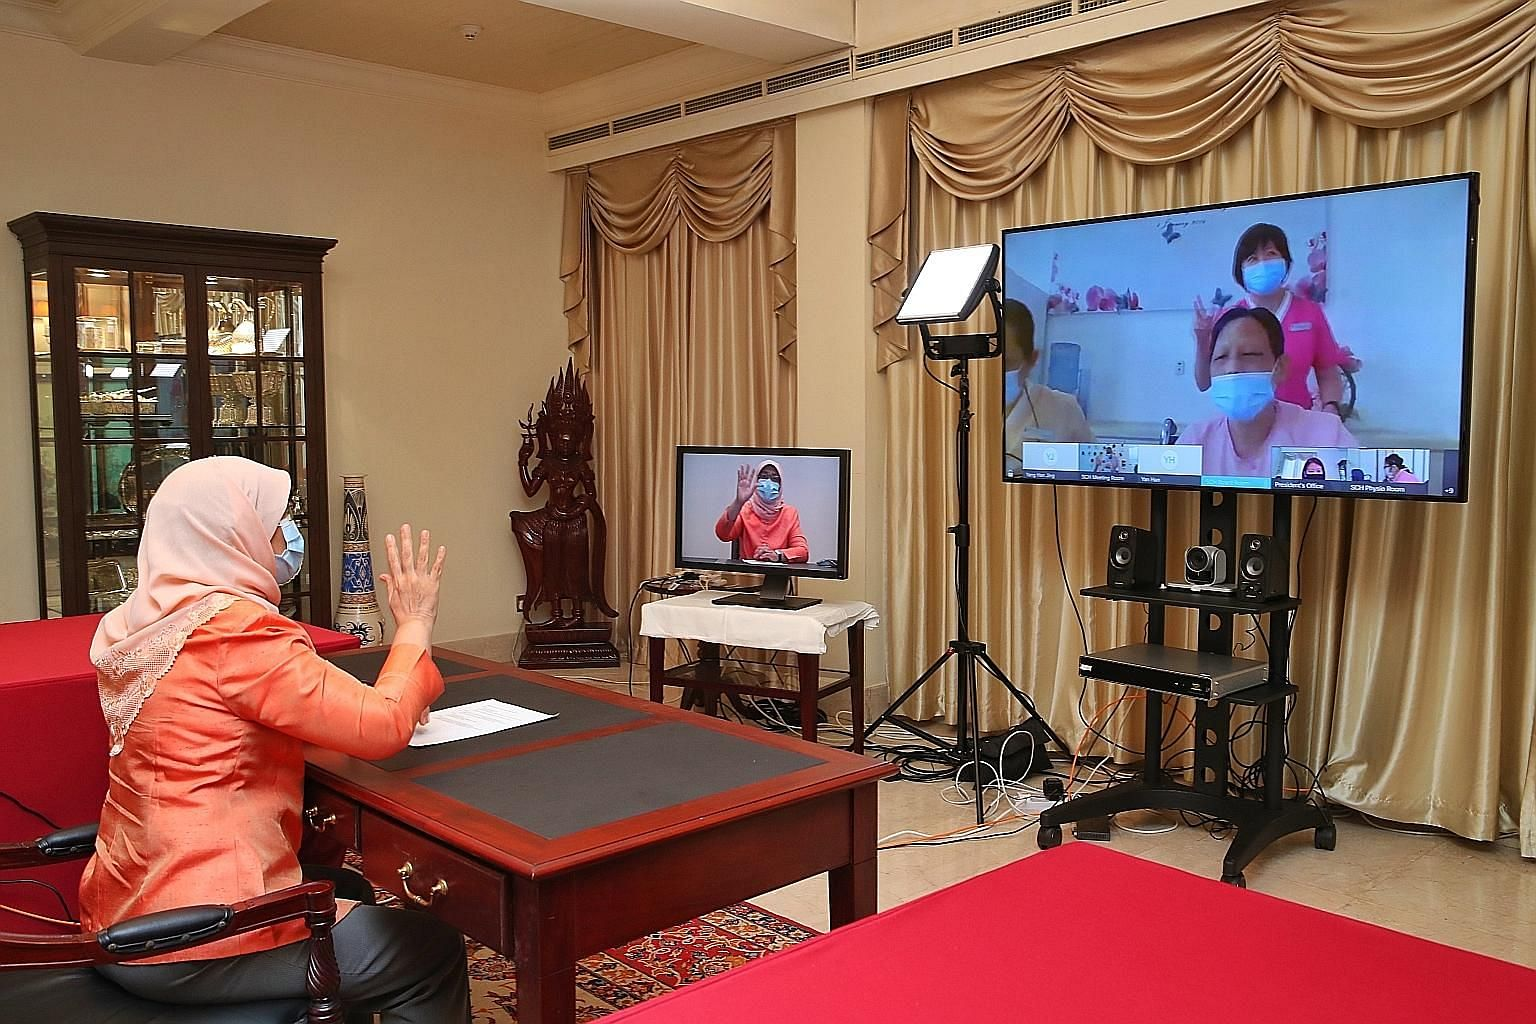 President Halimah Yacob chatting with residents and care staff of the Singapore Christian Home via videoconferencing yesterday. Speaking to the media later, she noted that the care staff have put in tremendous effort for the residents, and sacrificed